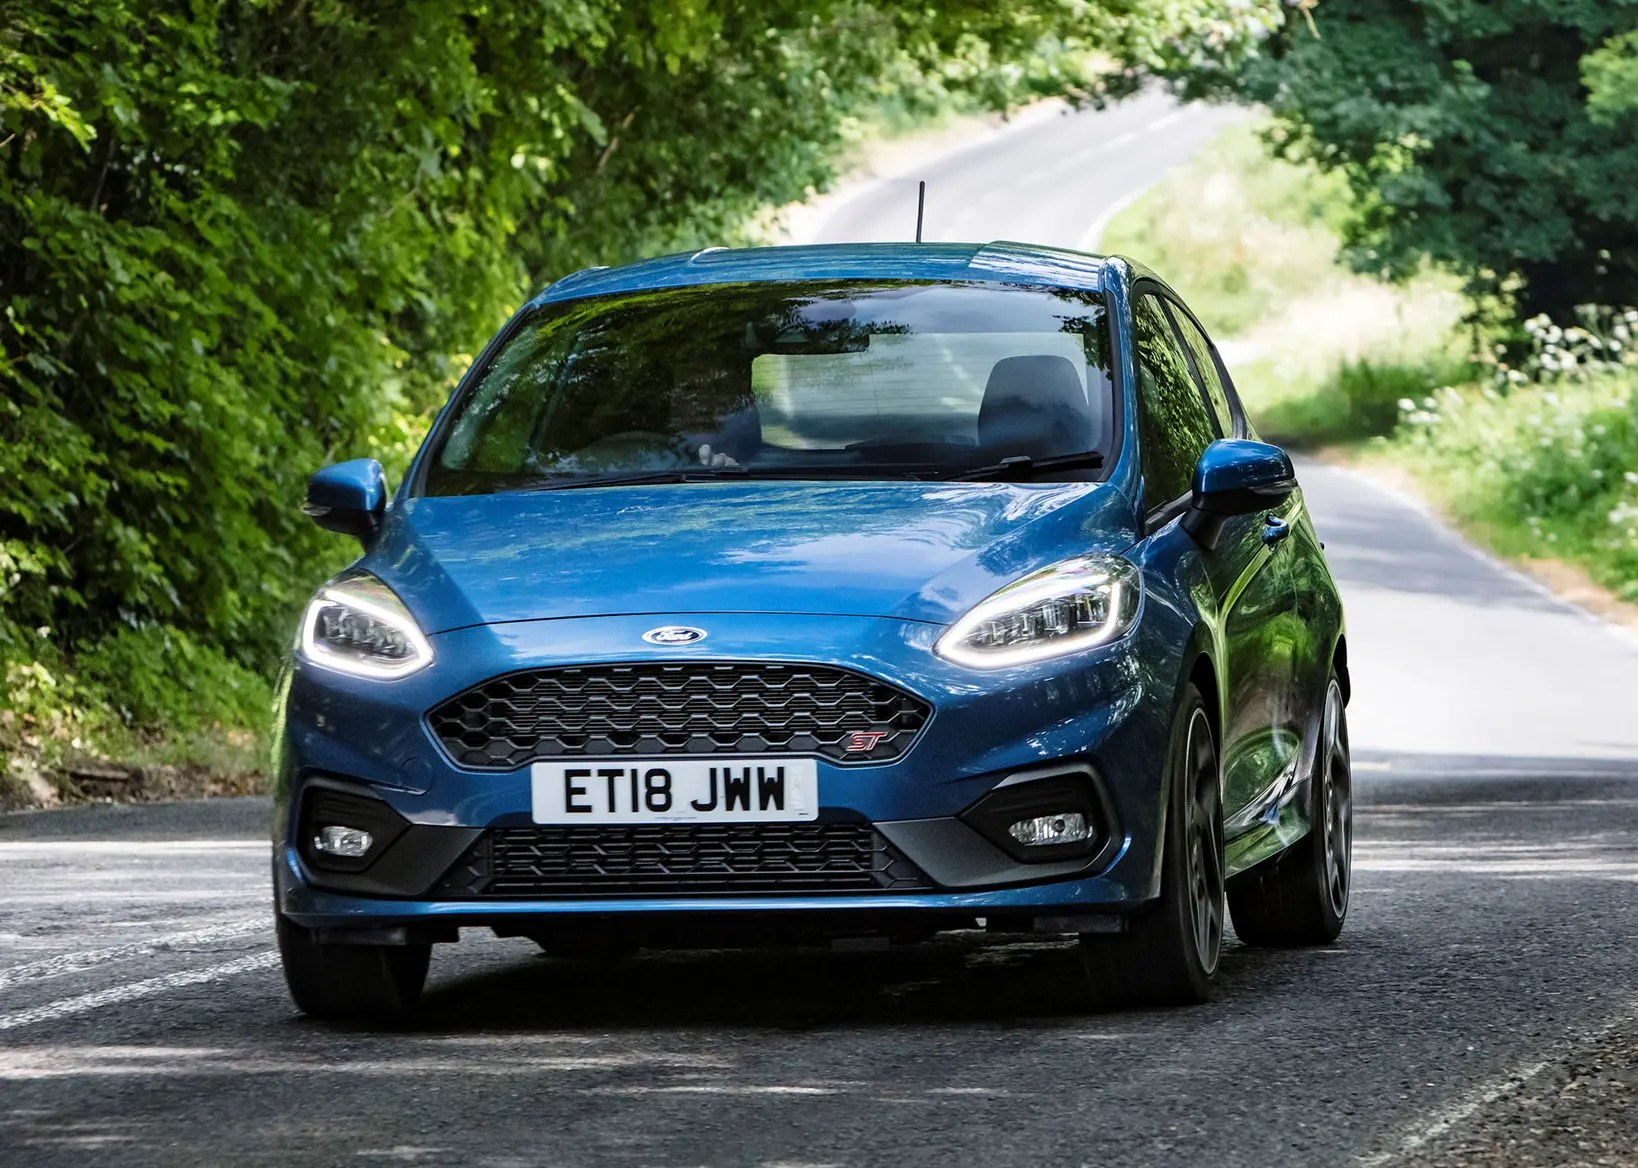 Ford Fiesta St Ford Fiesta St Review Parkers